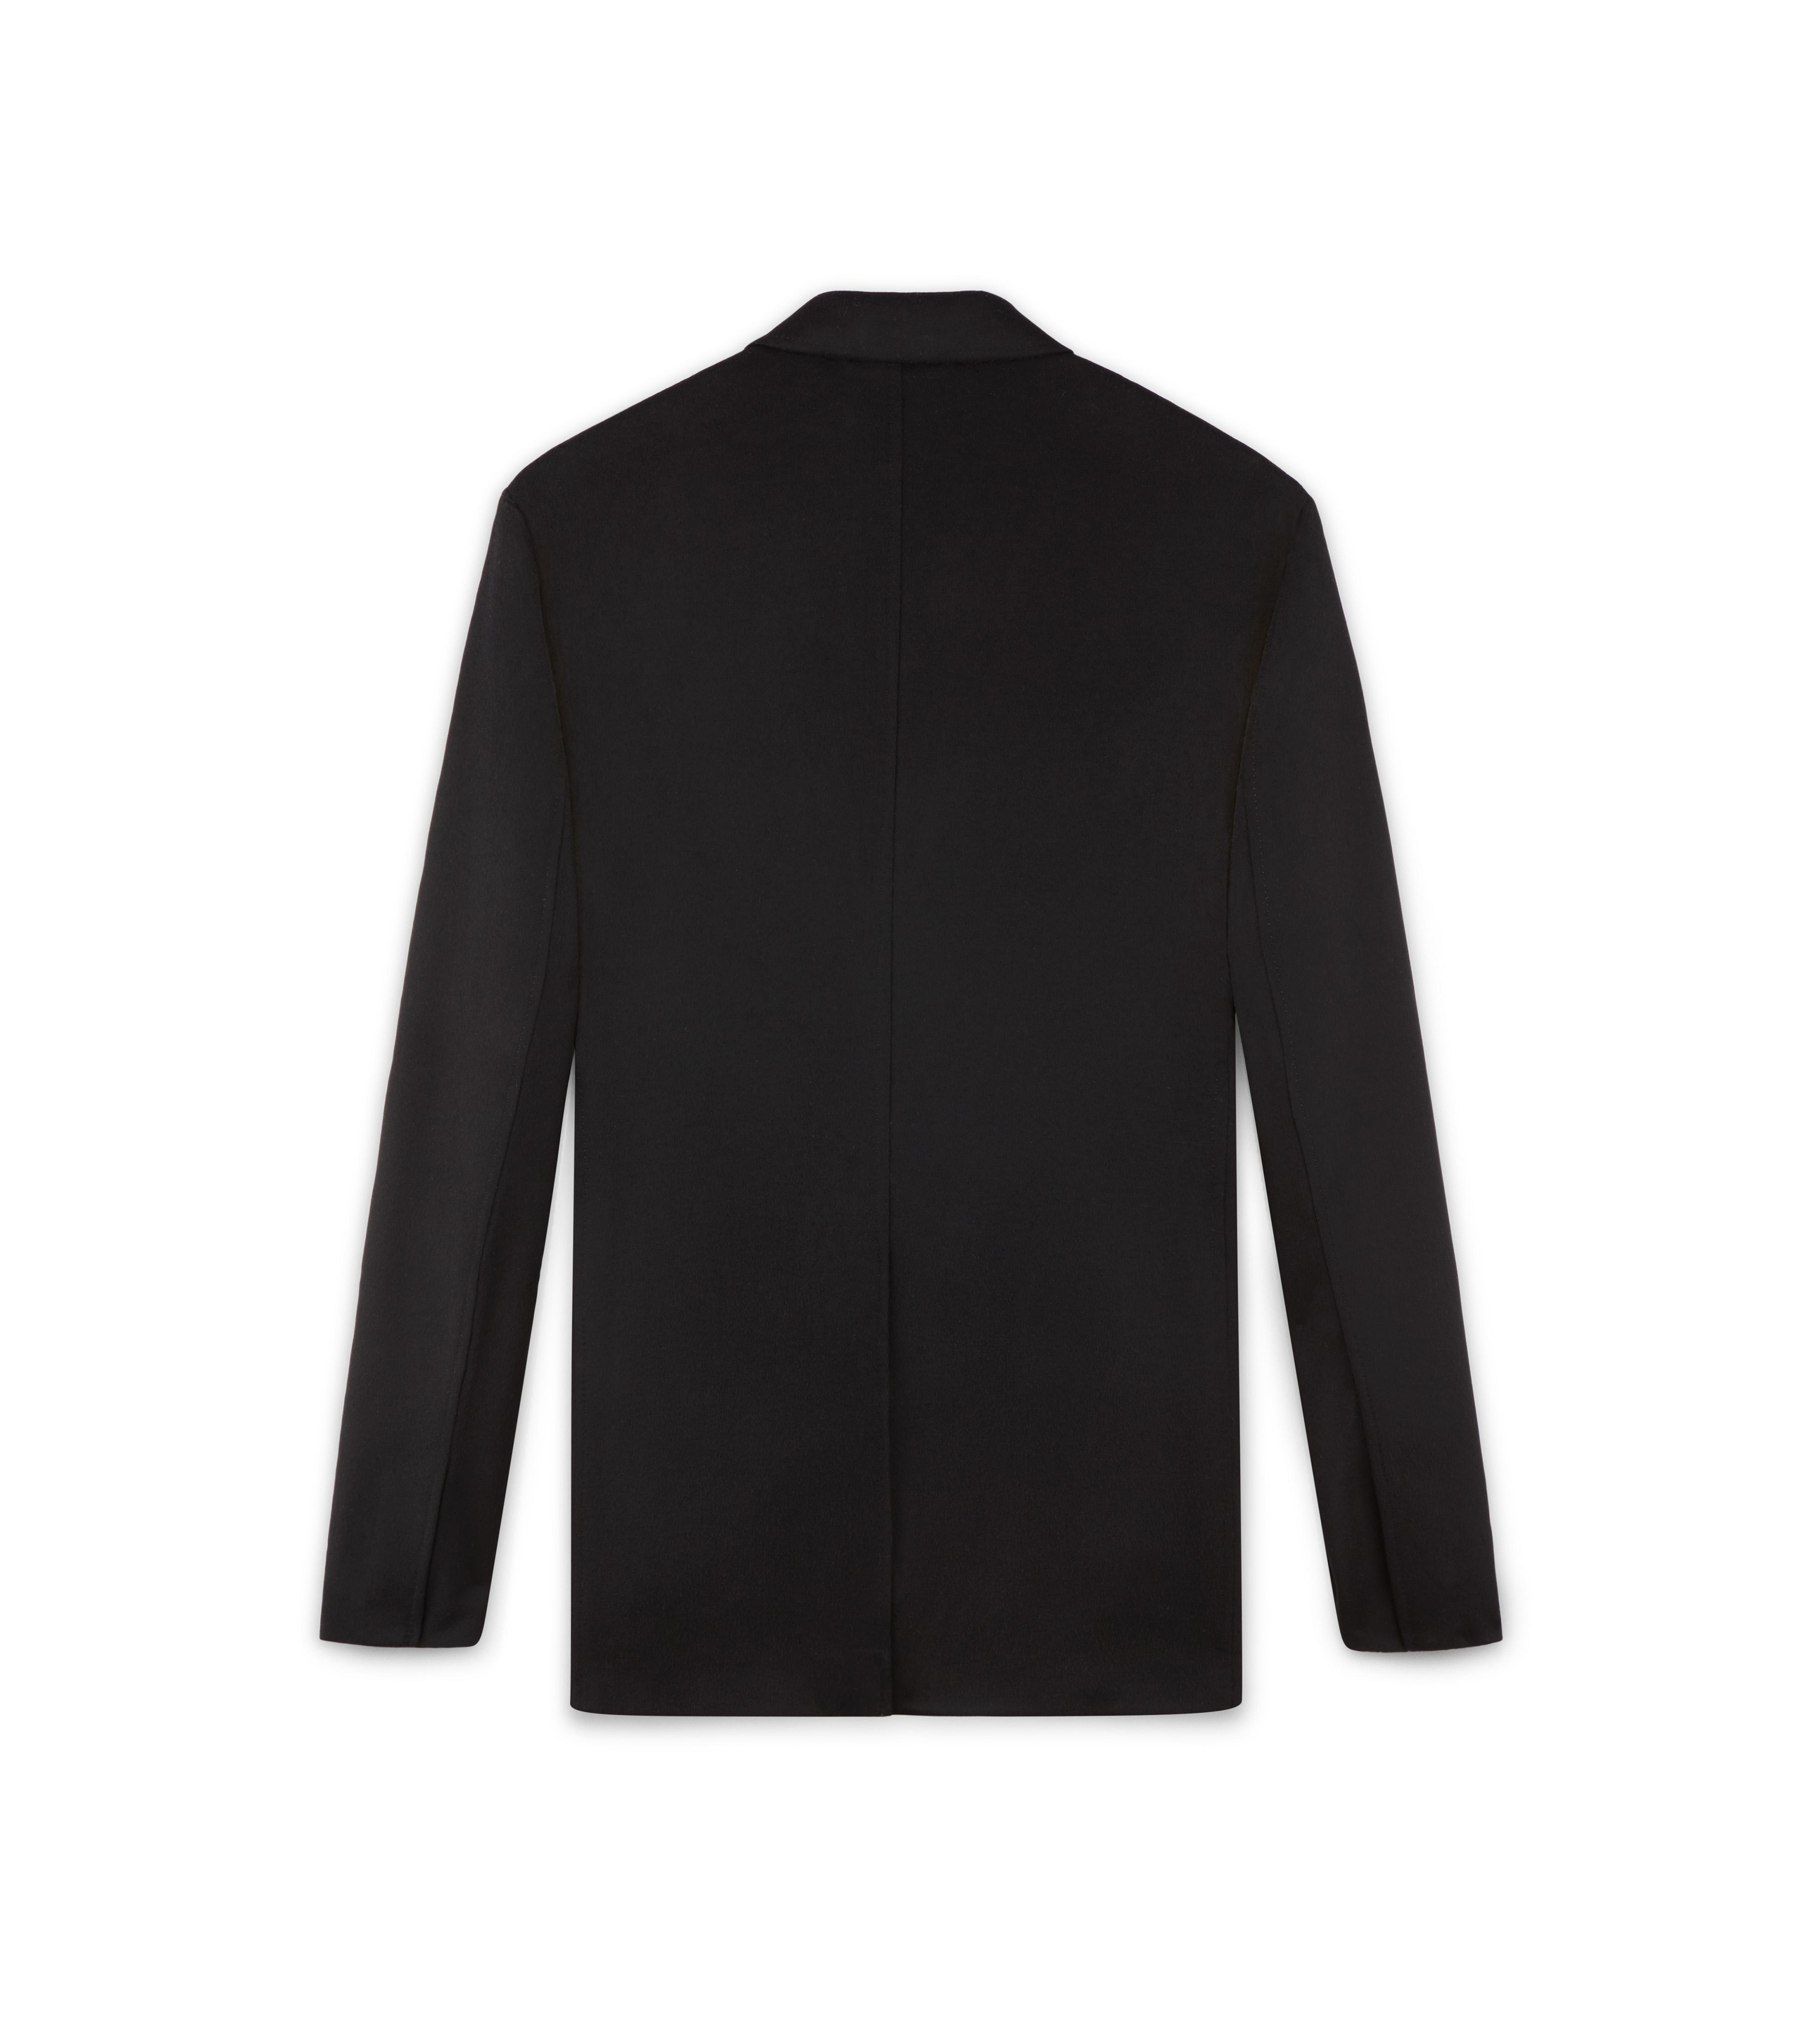 BLACK BRUSHED CASHMERE O'CONNOR SPORT JACKET B thumbnail